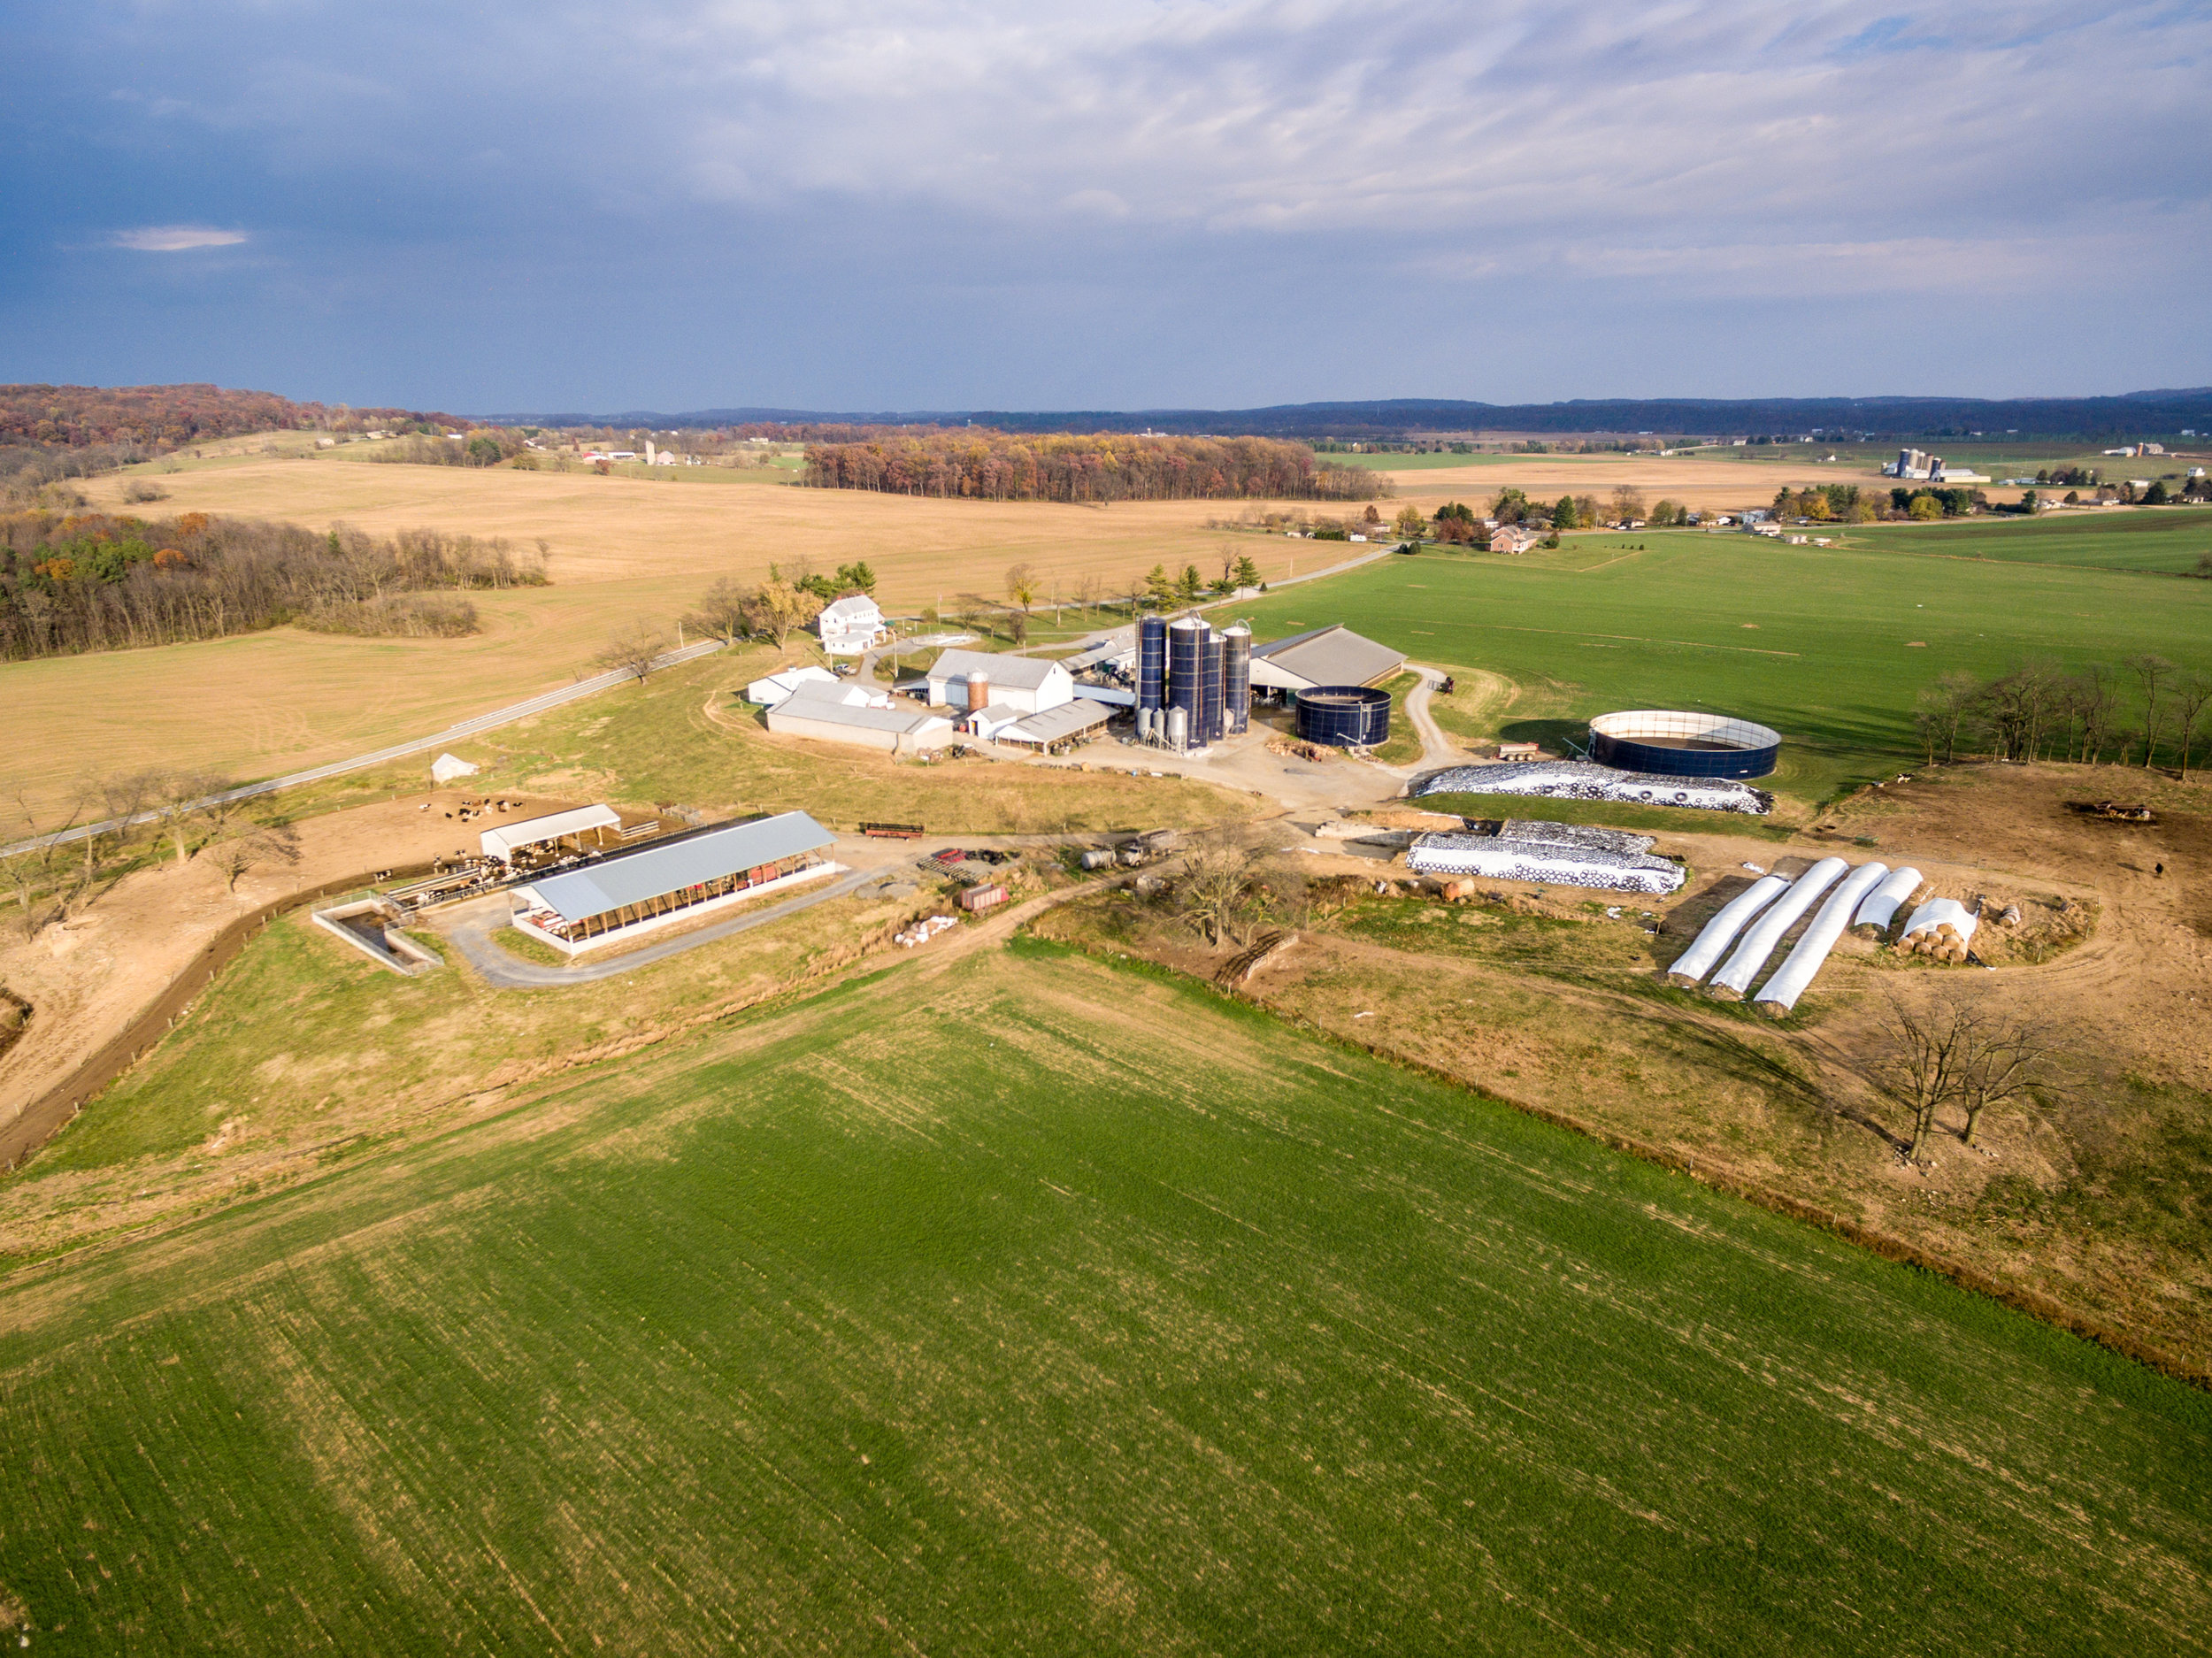 Photo by Edwin Remsberg. Aerial image of dairy farm in Maryland highlights barns, buildings, and fields associated with the dairy.